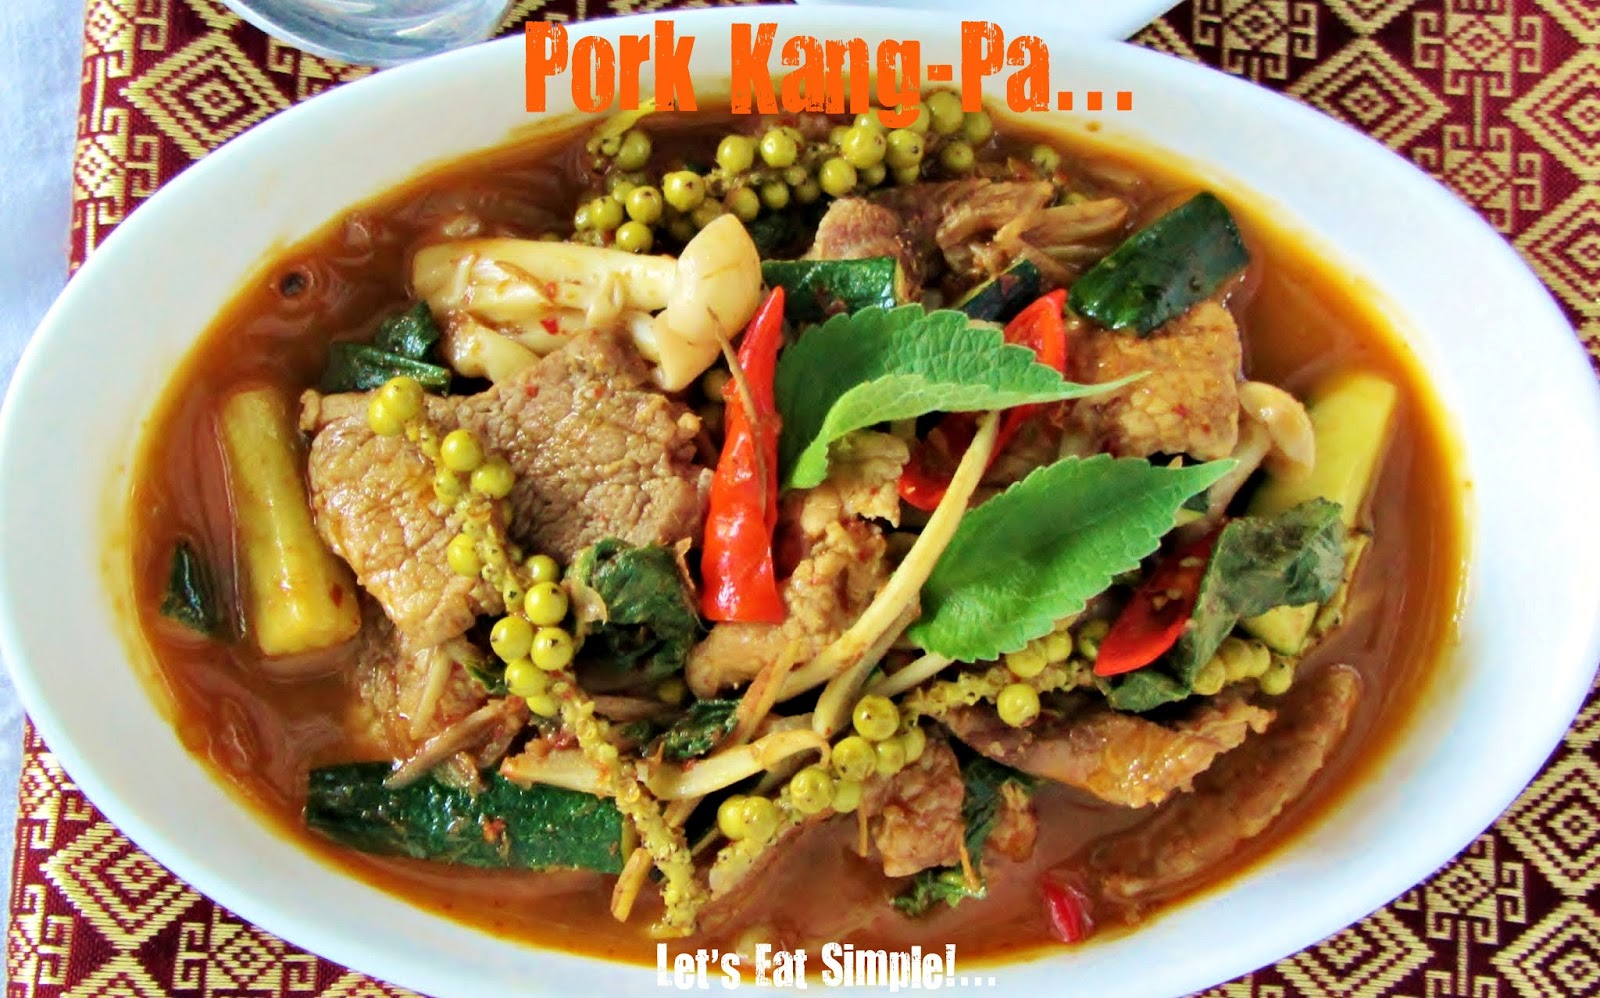 Let's eat......simple!: Pork Kang Pa / Jungle Curry Pork